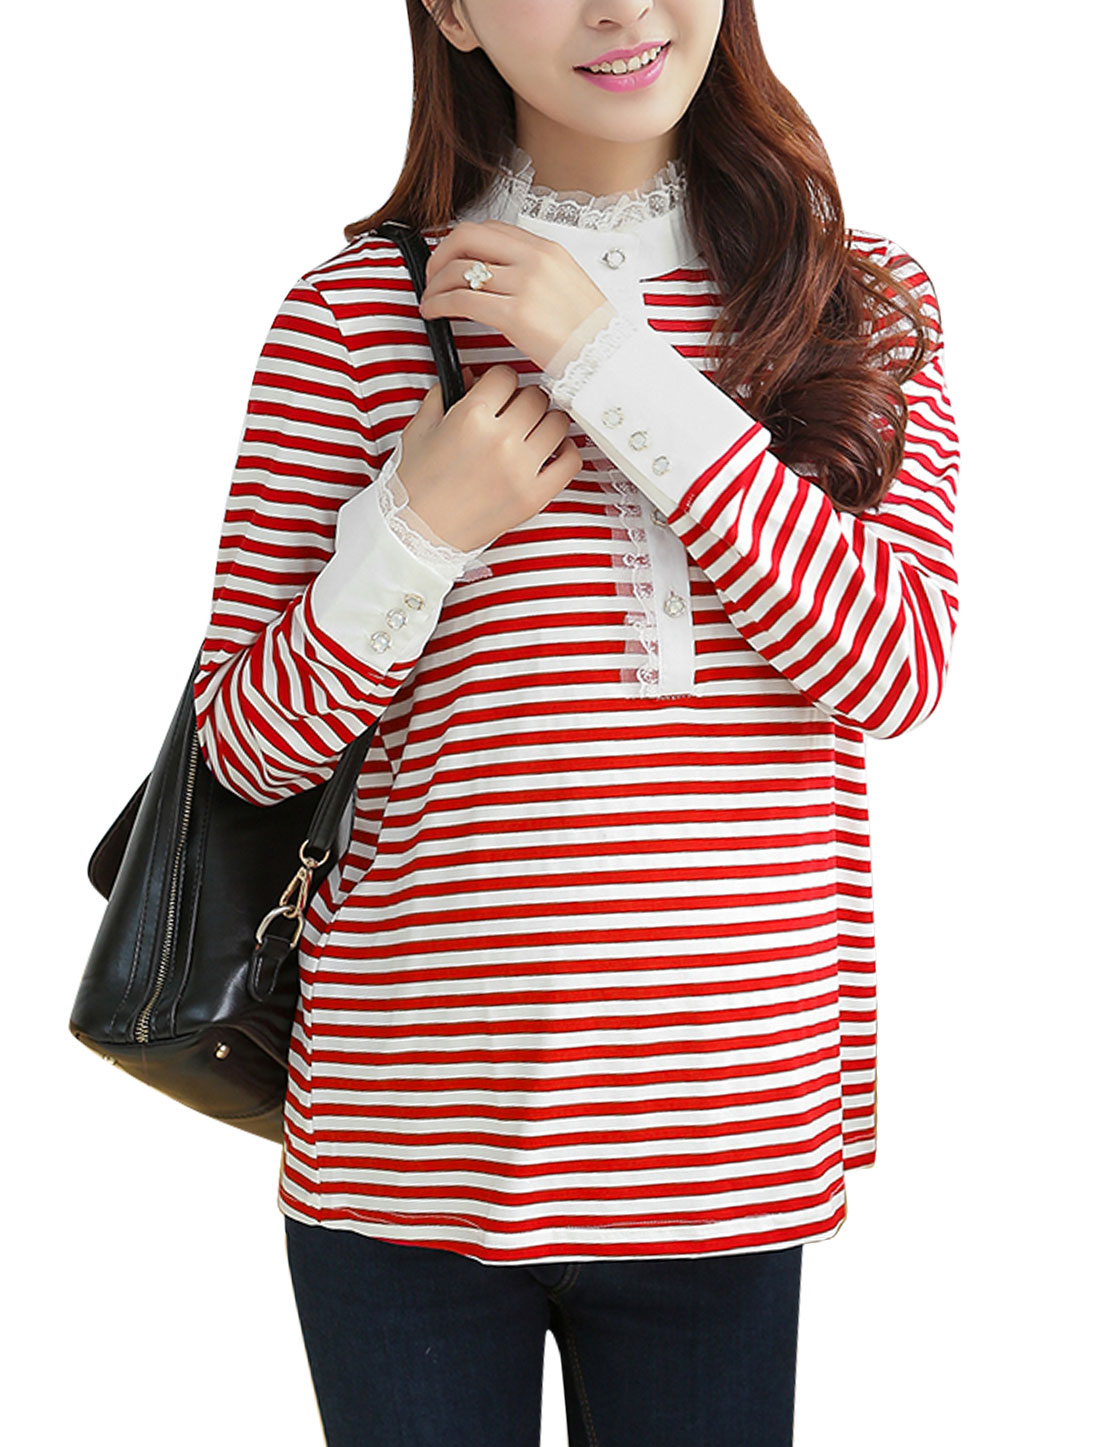 Maternity Stripes Long Sleeves Stand Collar Red White Casual Shirt M